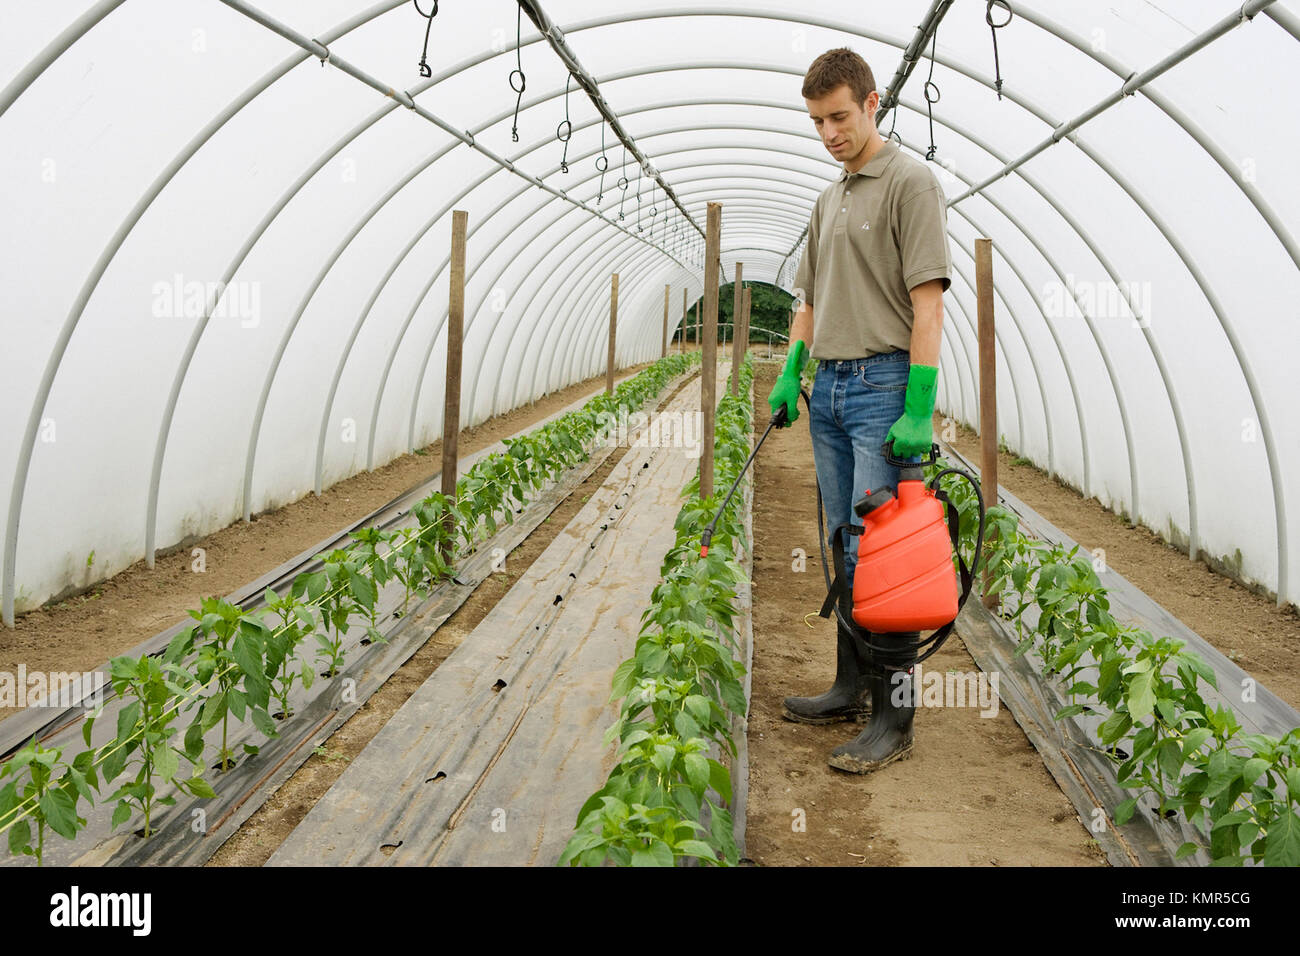 green pepper plant treatment with sprayer (insecticides, pesticides). Greenhouse. Agricultural production. - Stock Image